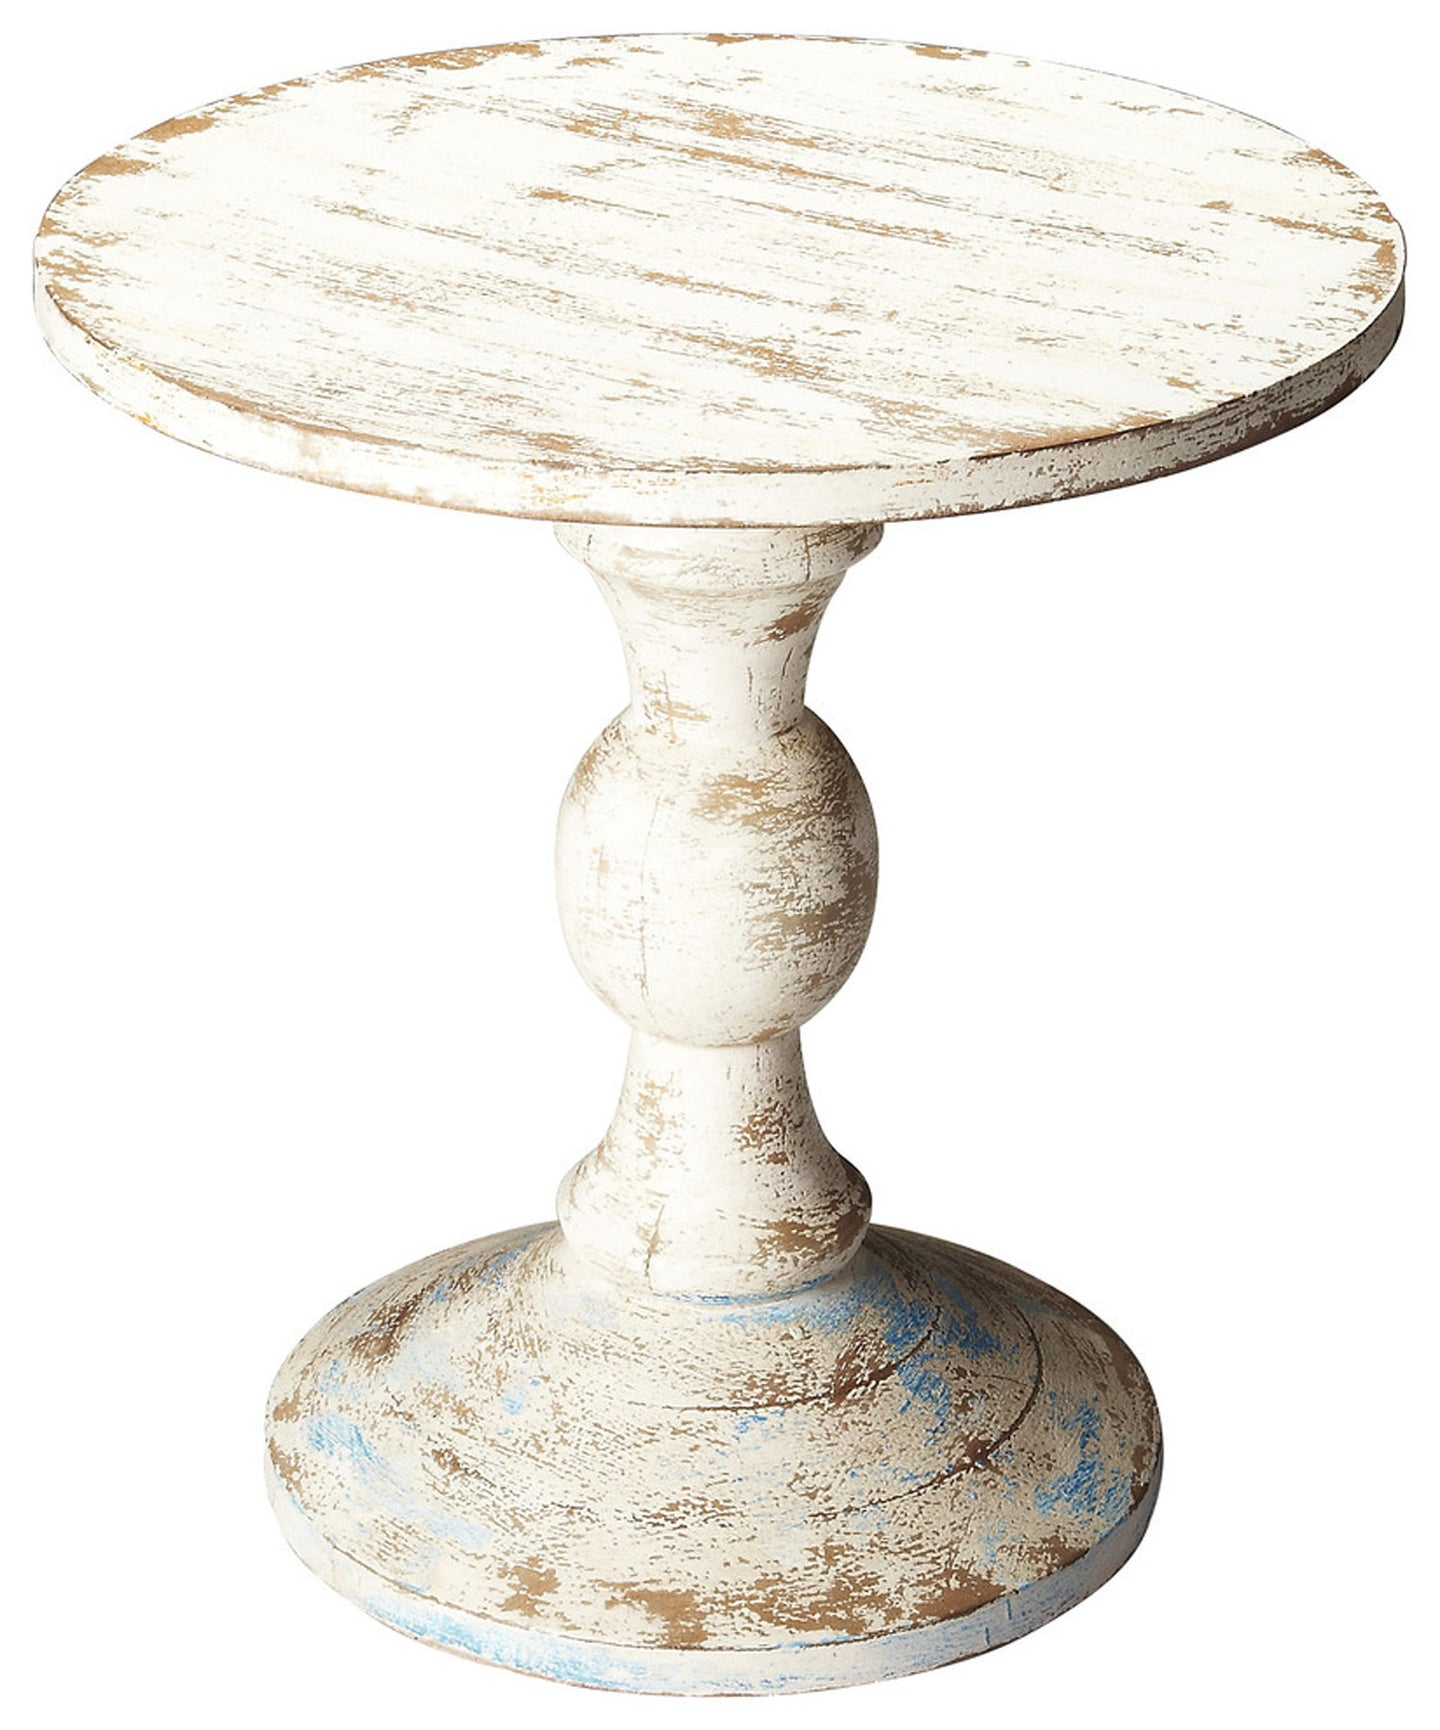 Grandmas Attic Distressed Solid Wood Pedestal Table by Butler Specialty Company 3313290